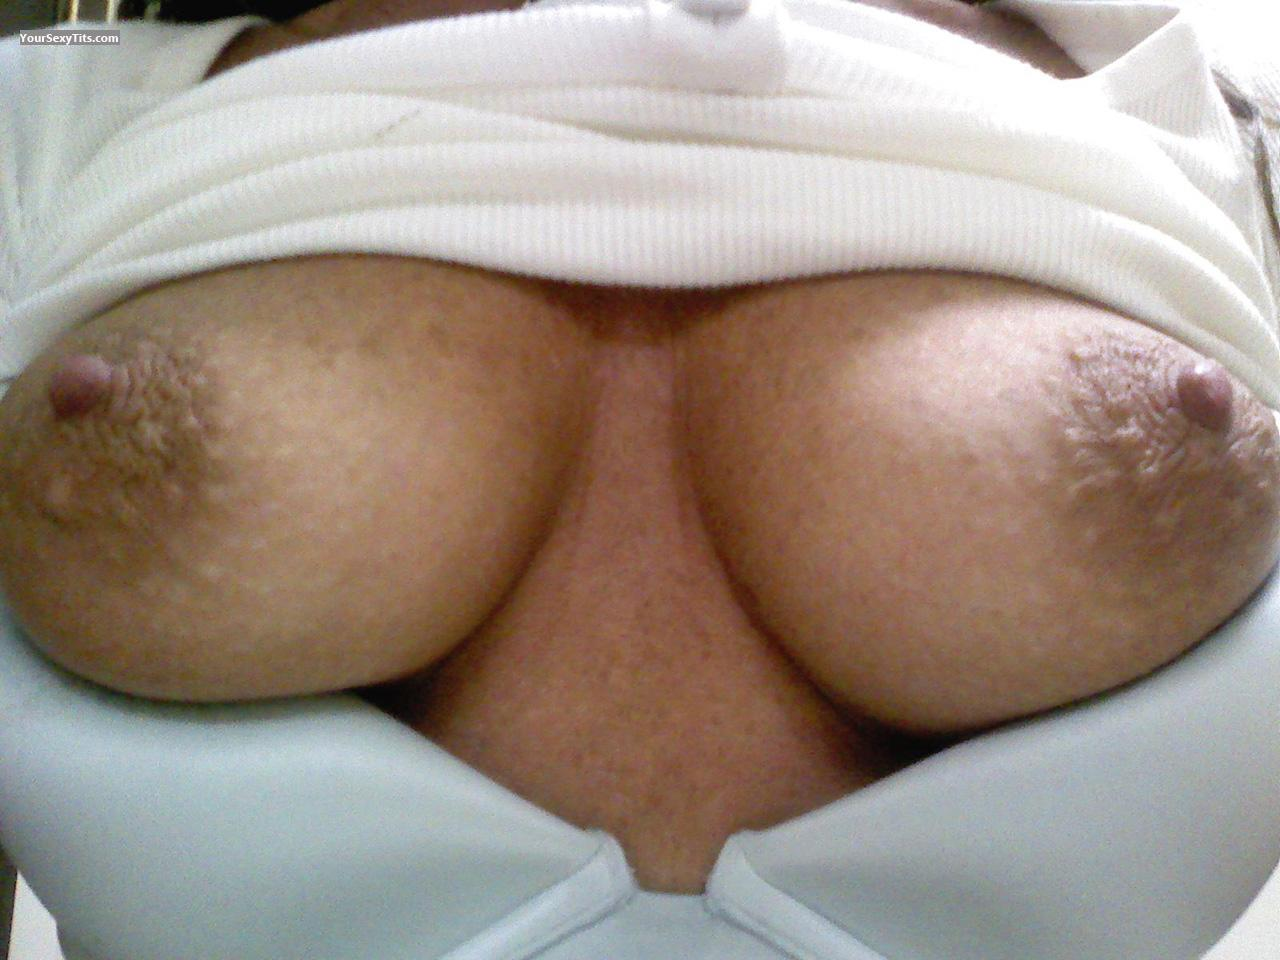 Tit Flash: My Medium Tits (Selfie) - Best Lips from United States